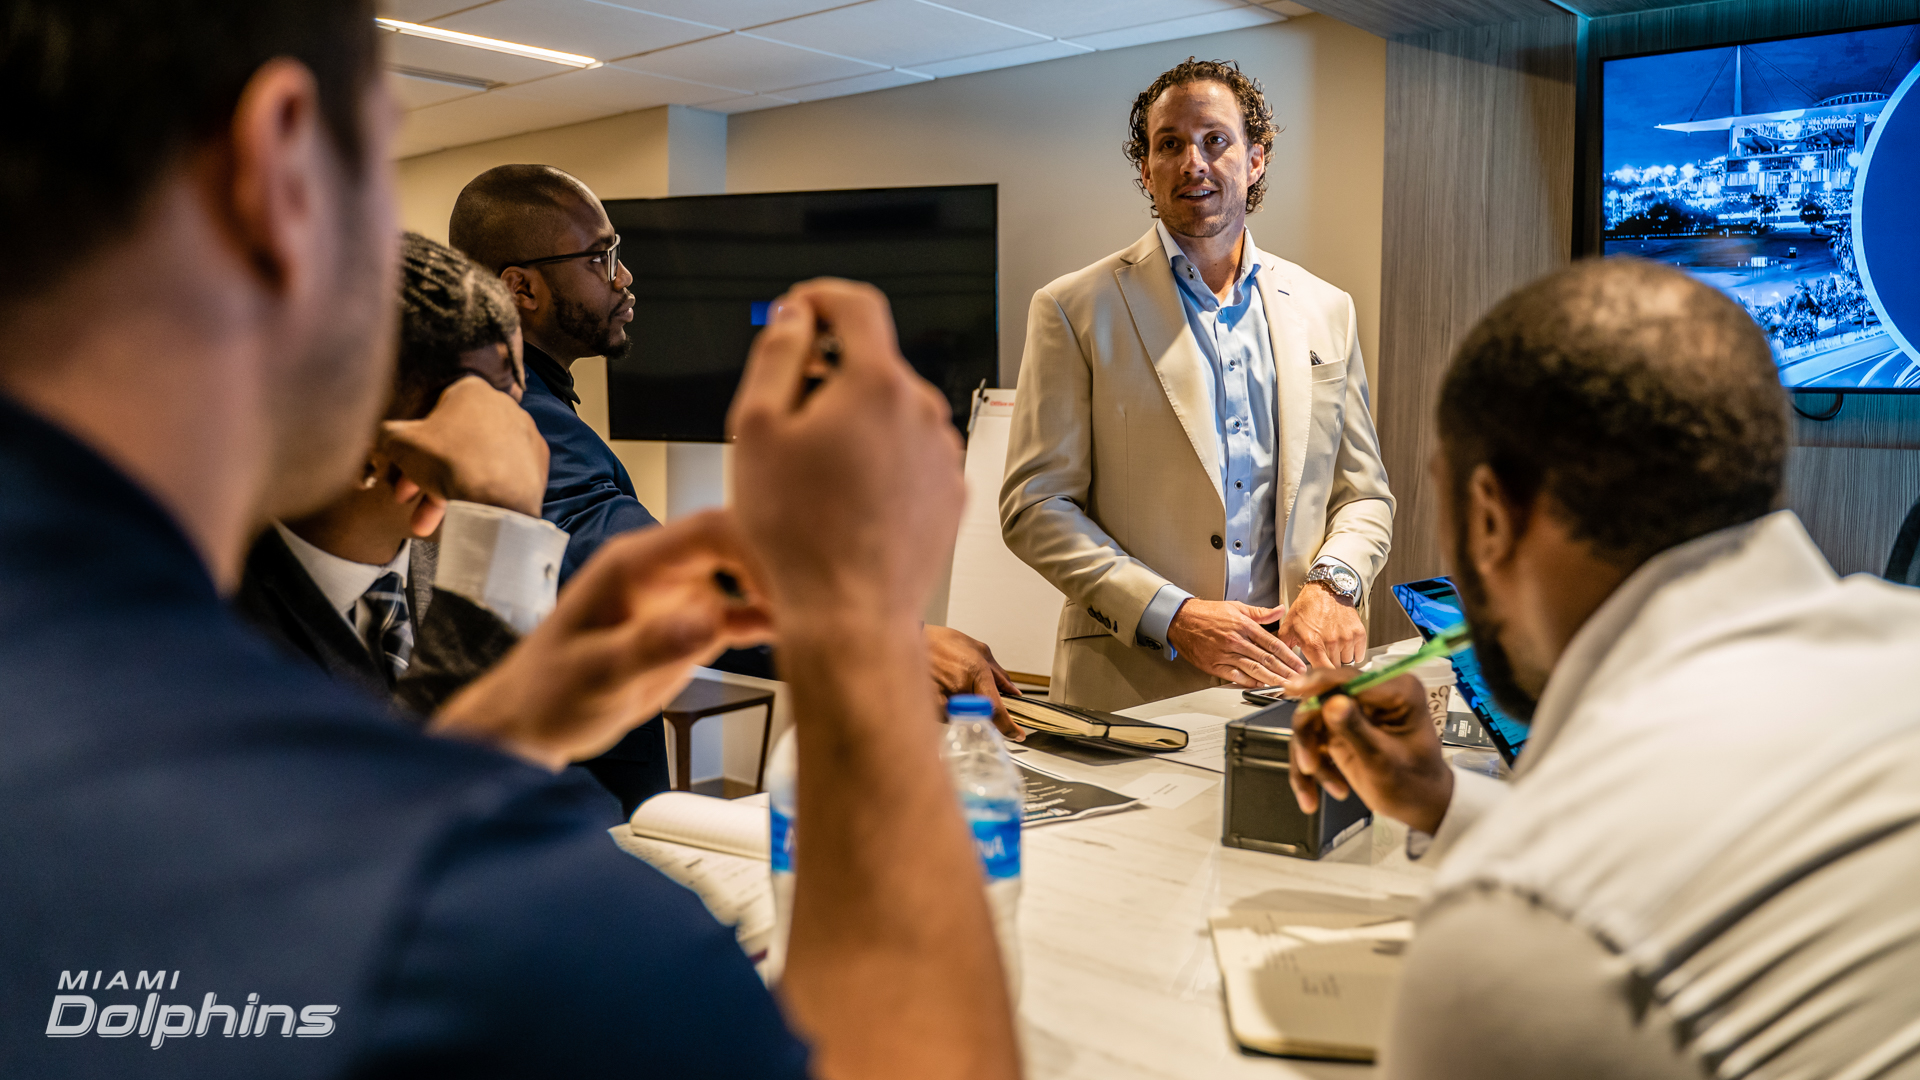 Dolphins Business Combine brainstorming.